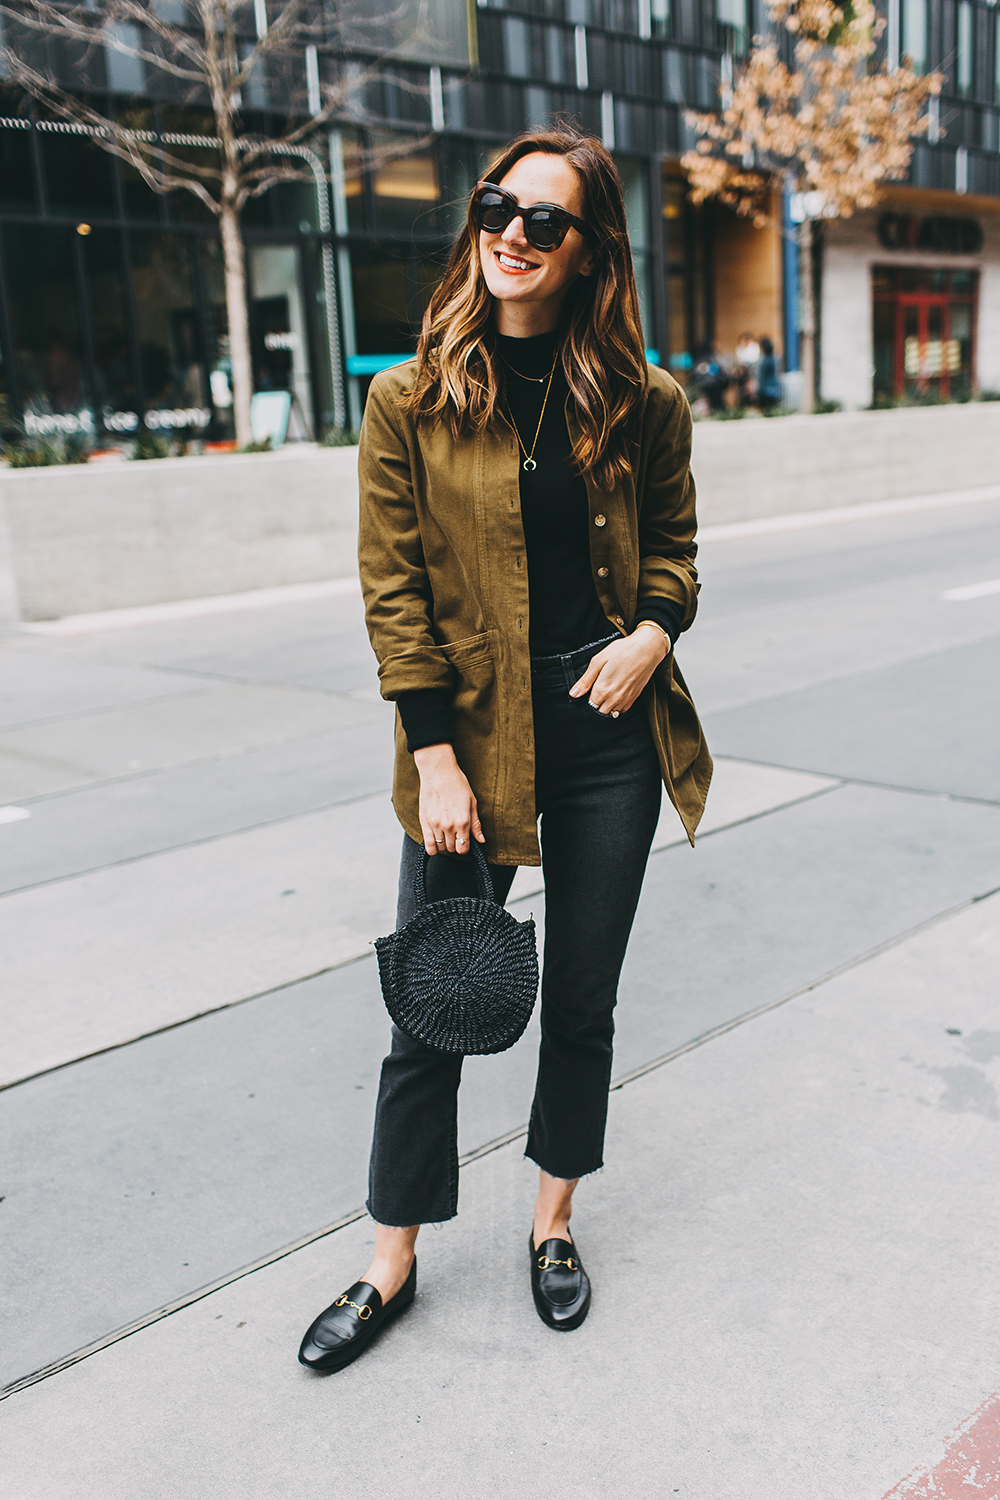 livvyland-blog-olivia-watson-austin-texas-fashion-blogger-fall-winter-all-black-sezane-will-khaki-jacket-outfit-missoma-horn-crescent-necklace-13